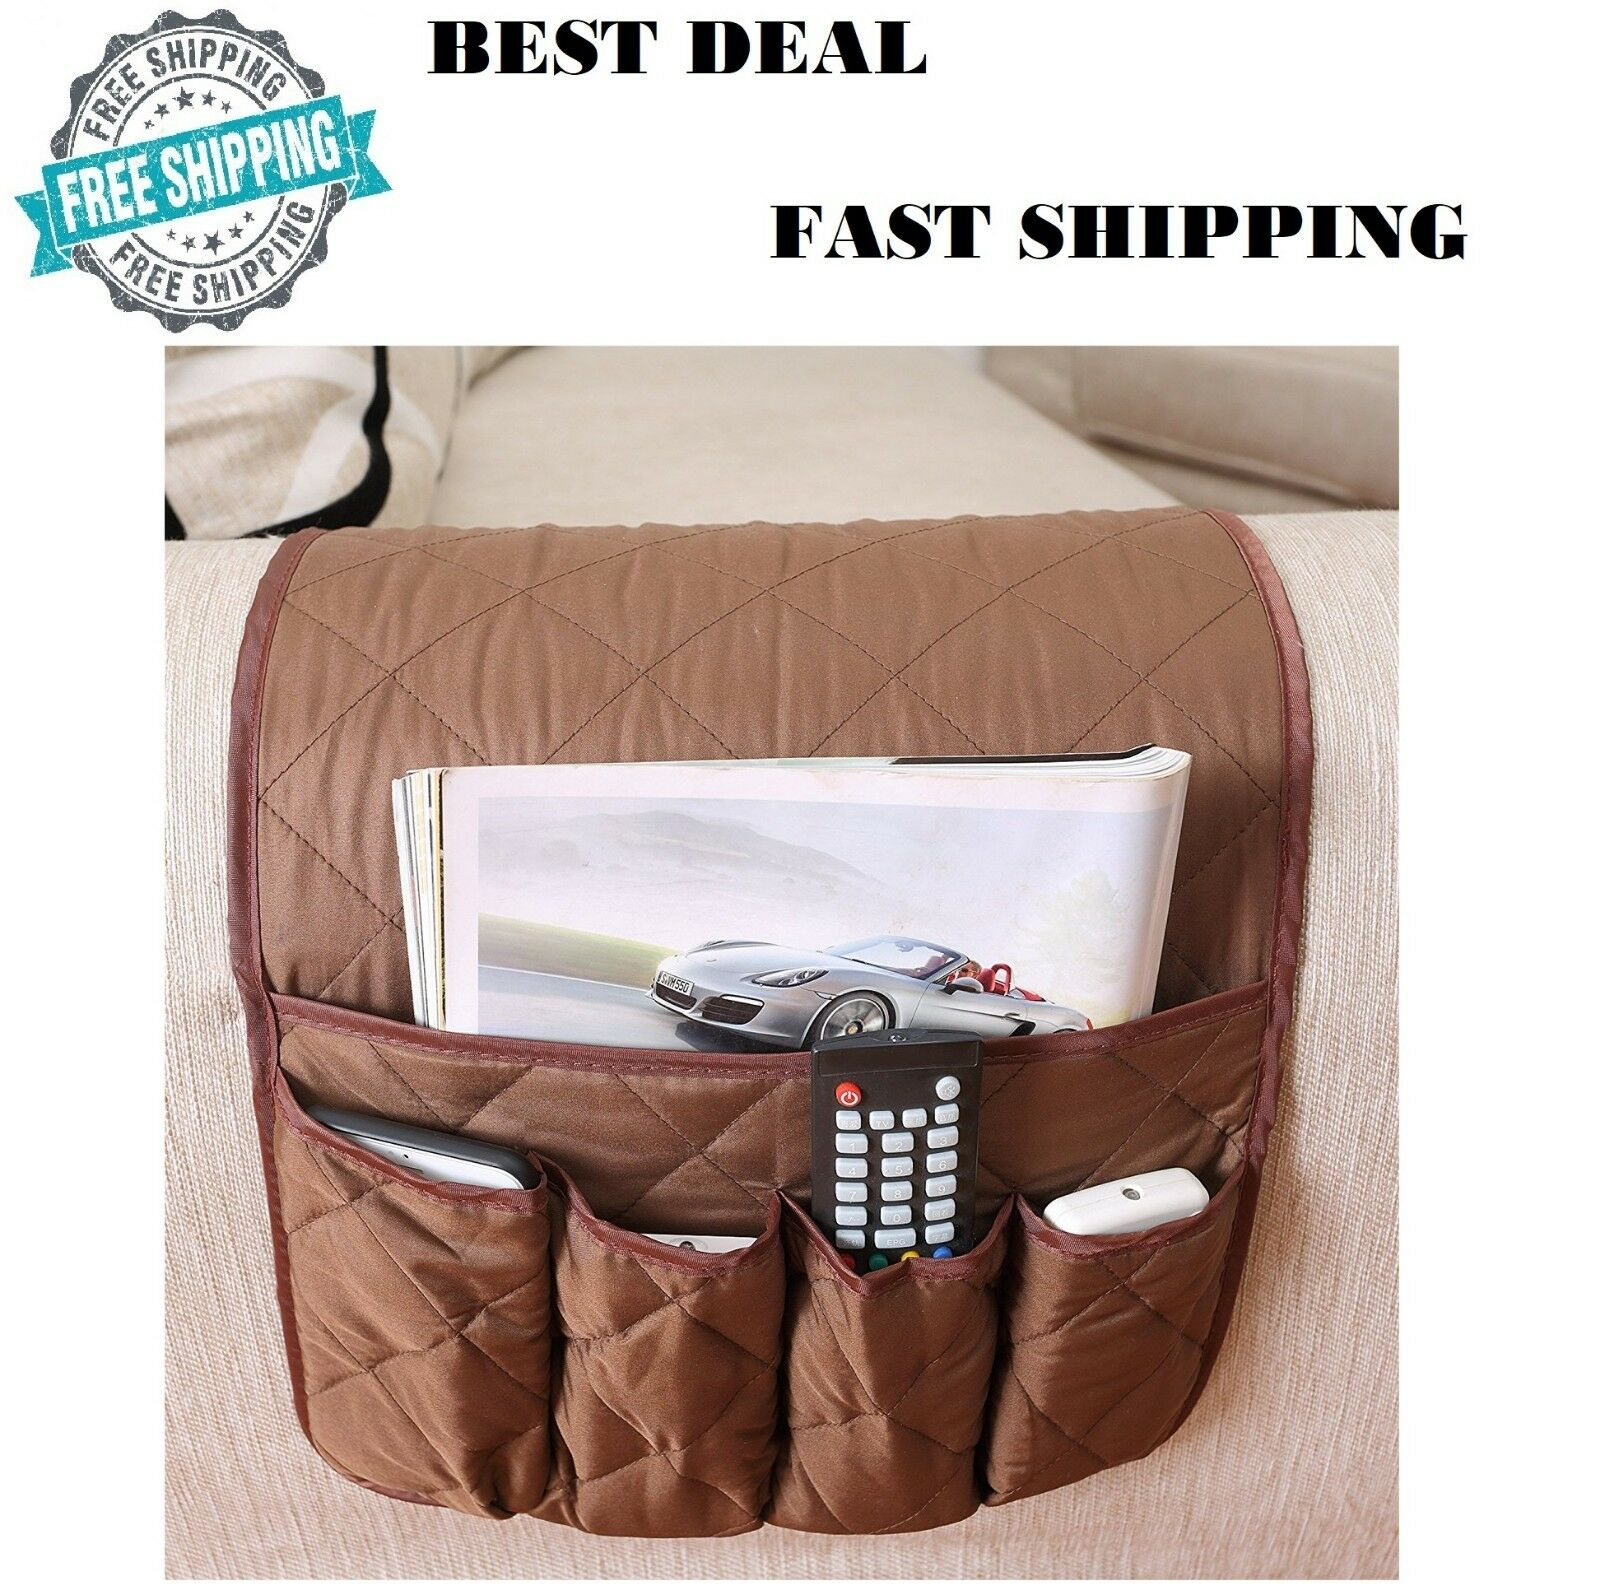 Remote Control Caddy Arm Chair Holder Storage Organizer Armrest Couch Pocket 1 Of 8free